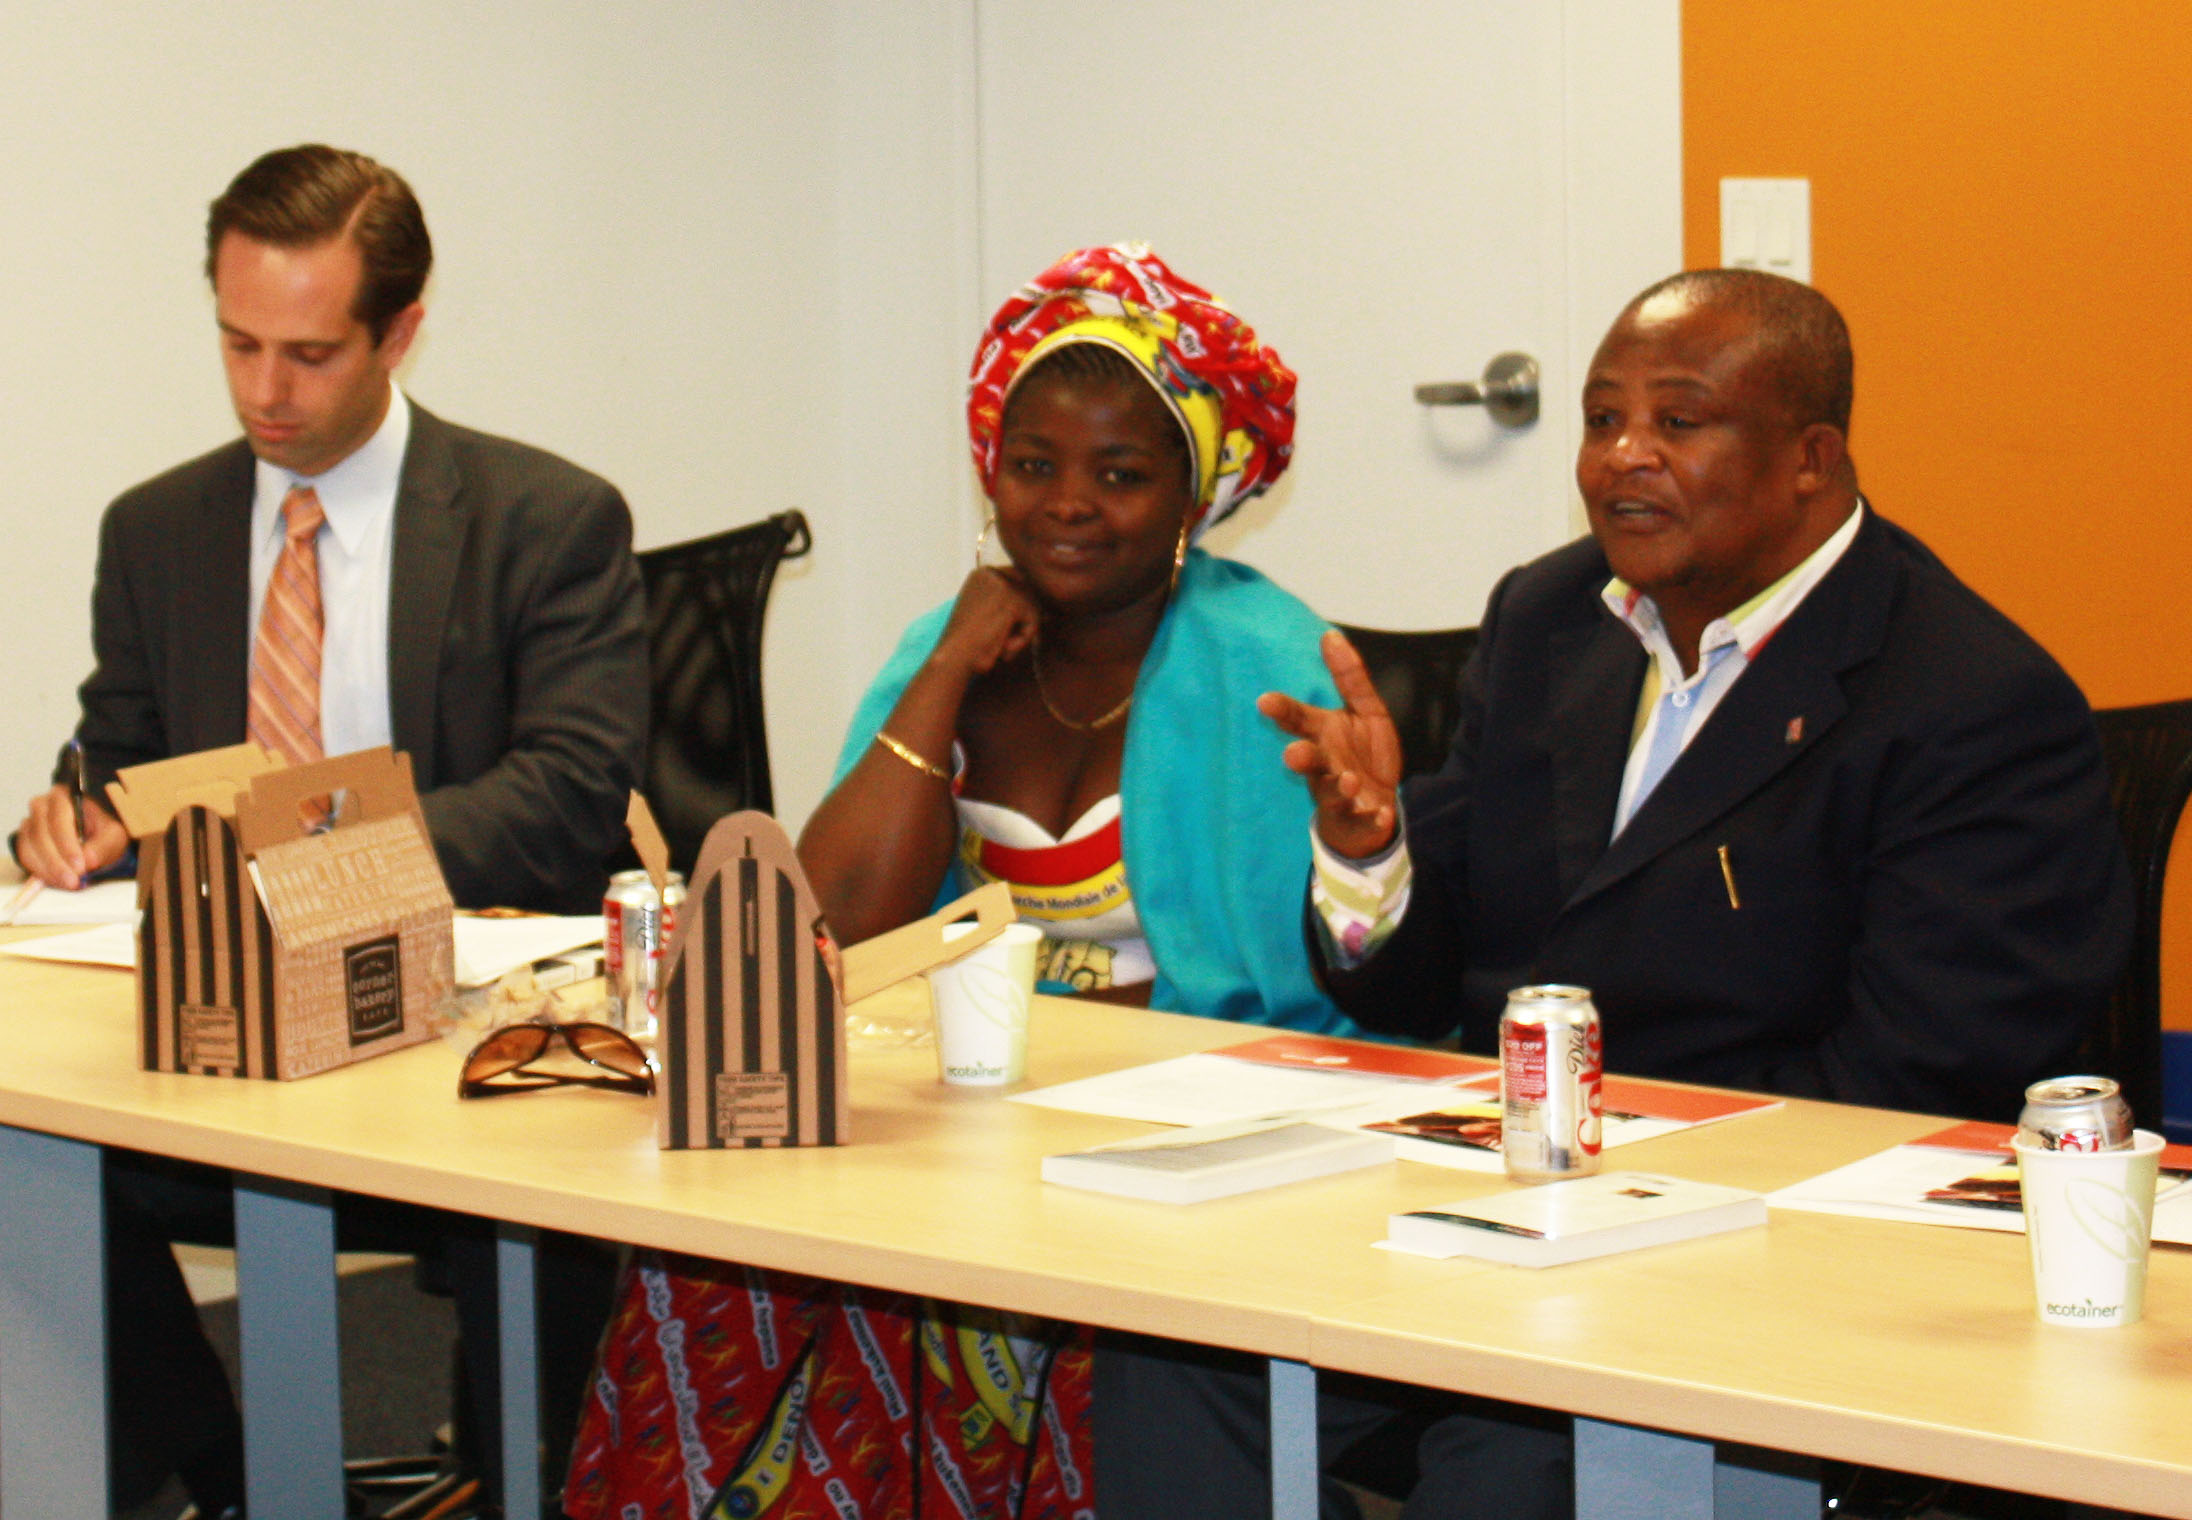 Congolese Activists Bring a Local Perspective to D.C.